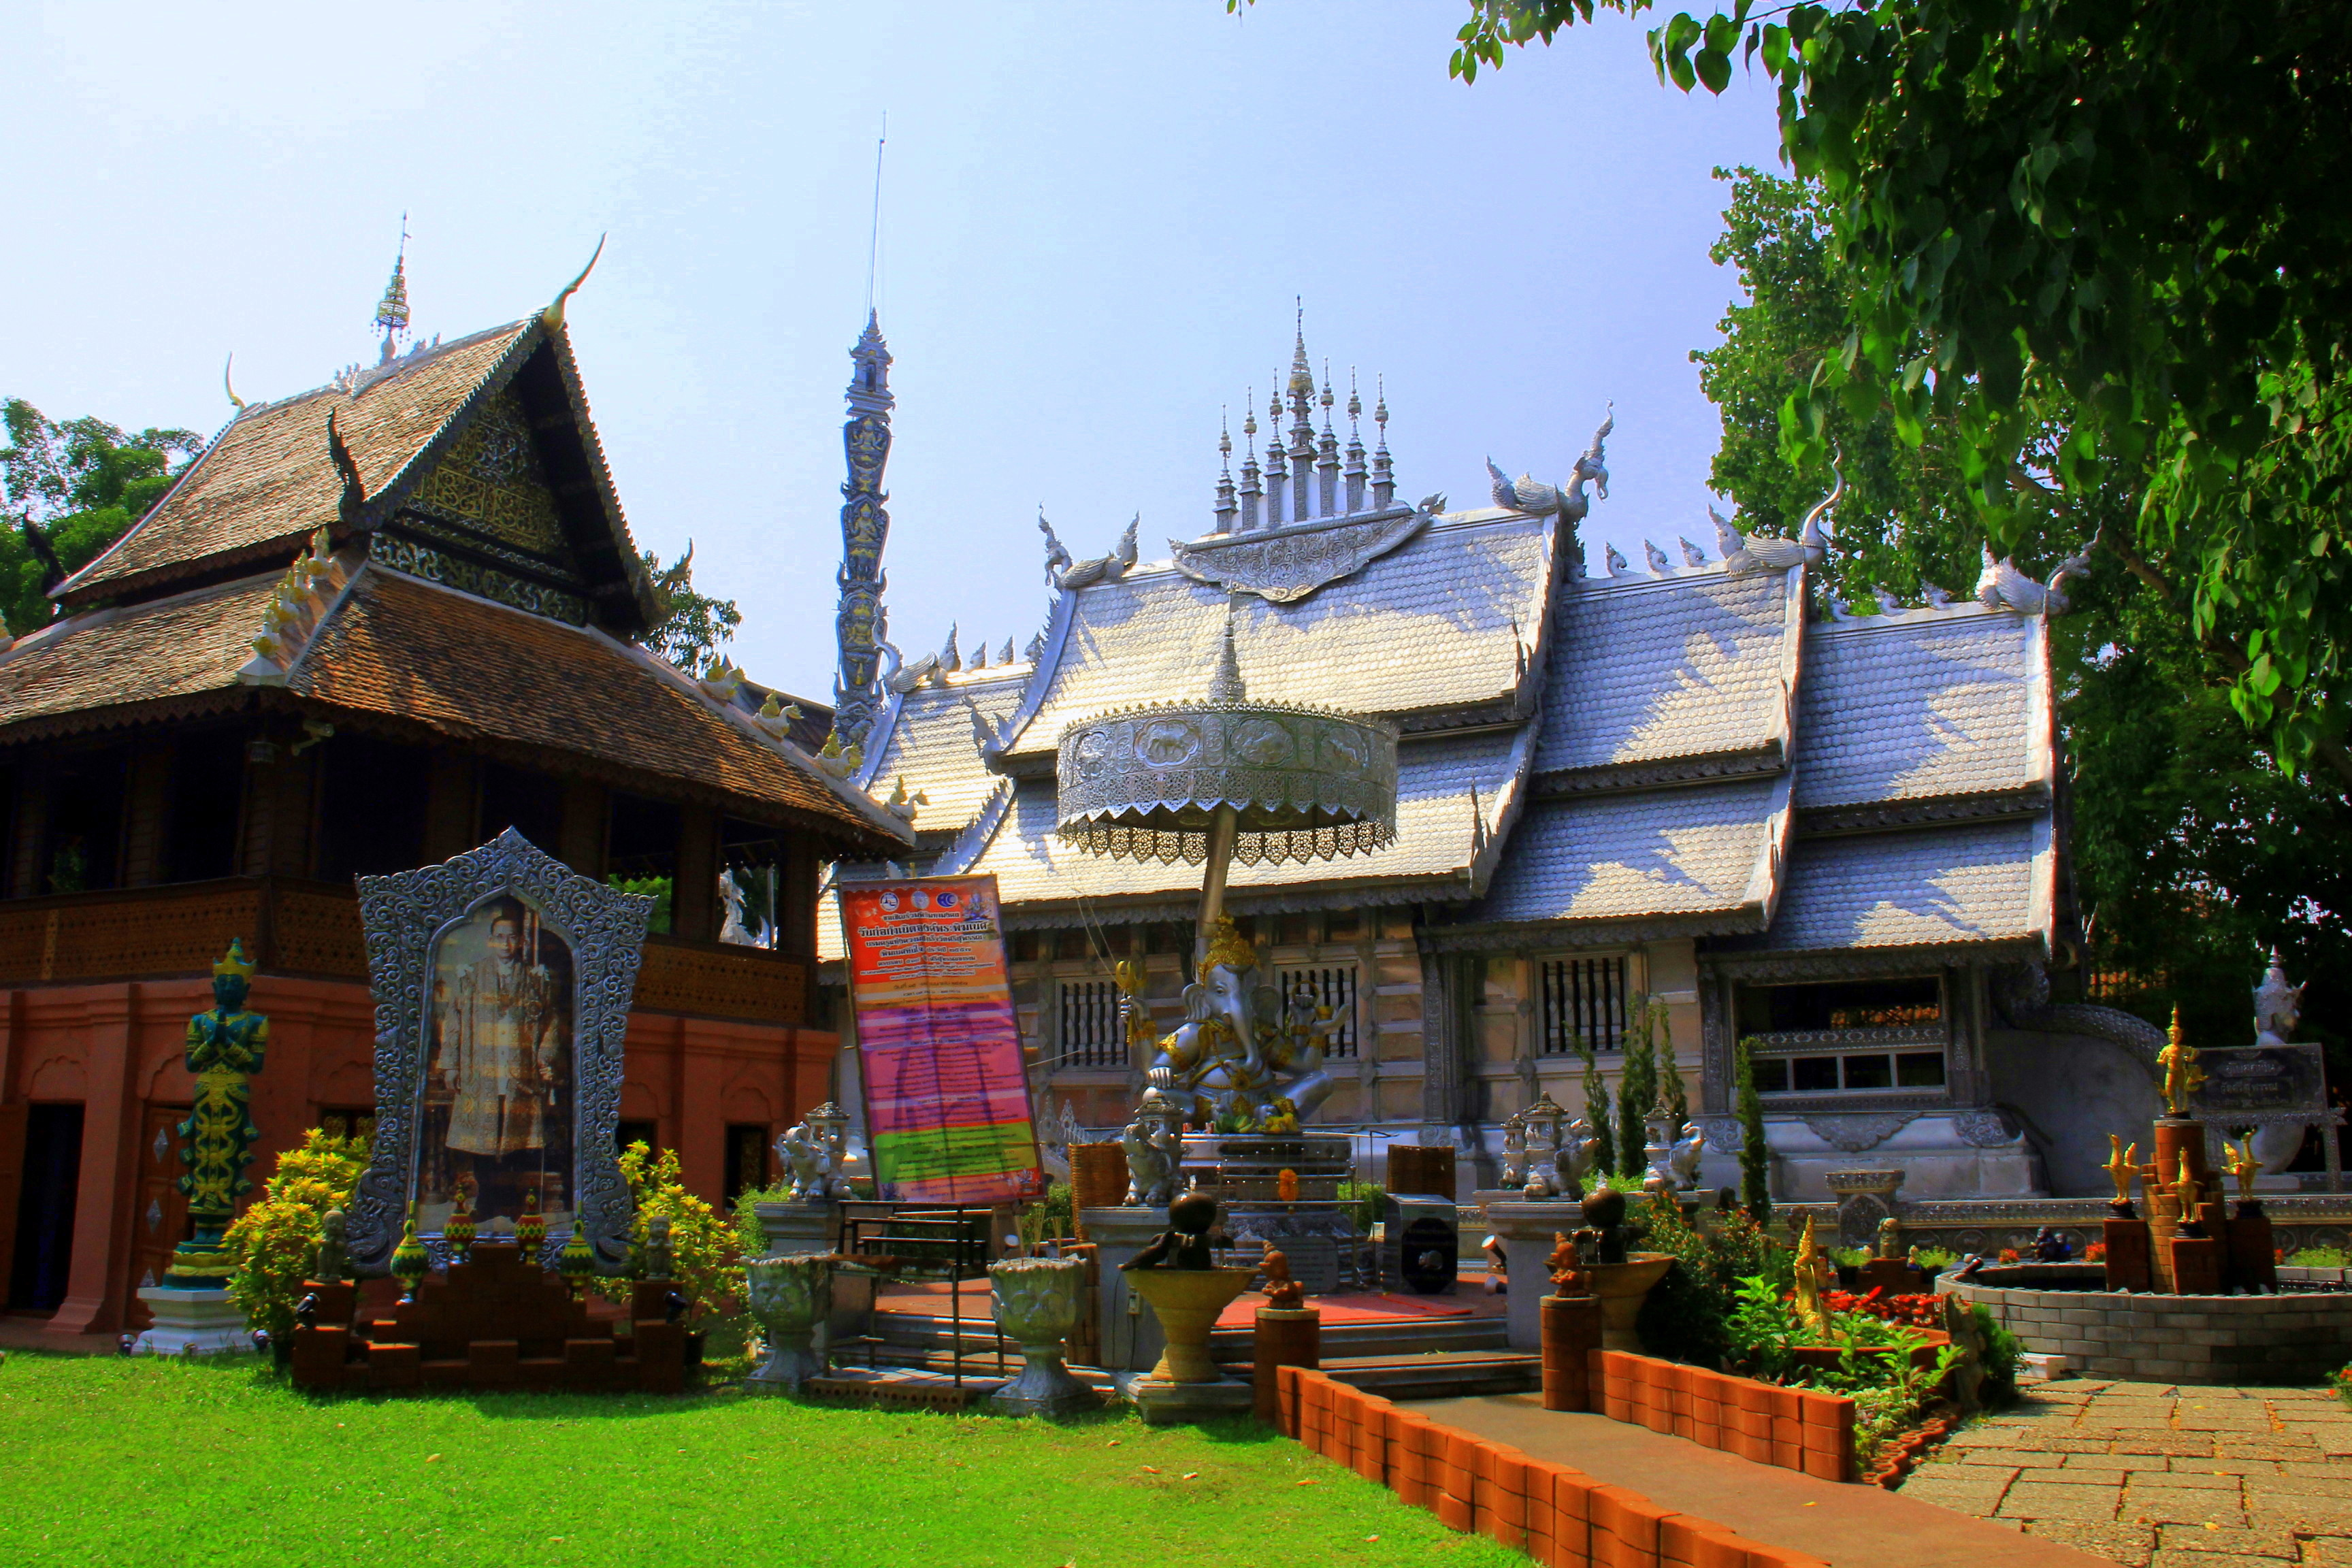 wat sisuphran is the most beautiful of the chiang mai temples